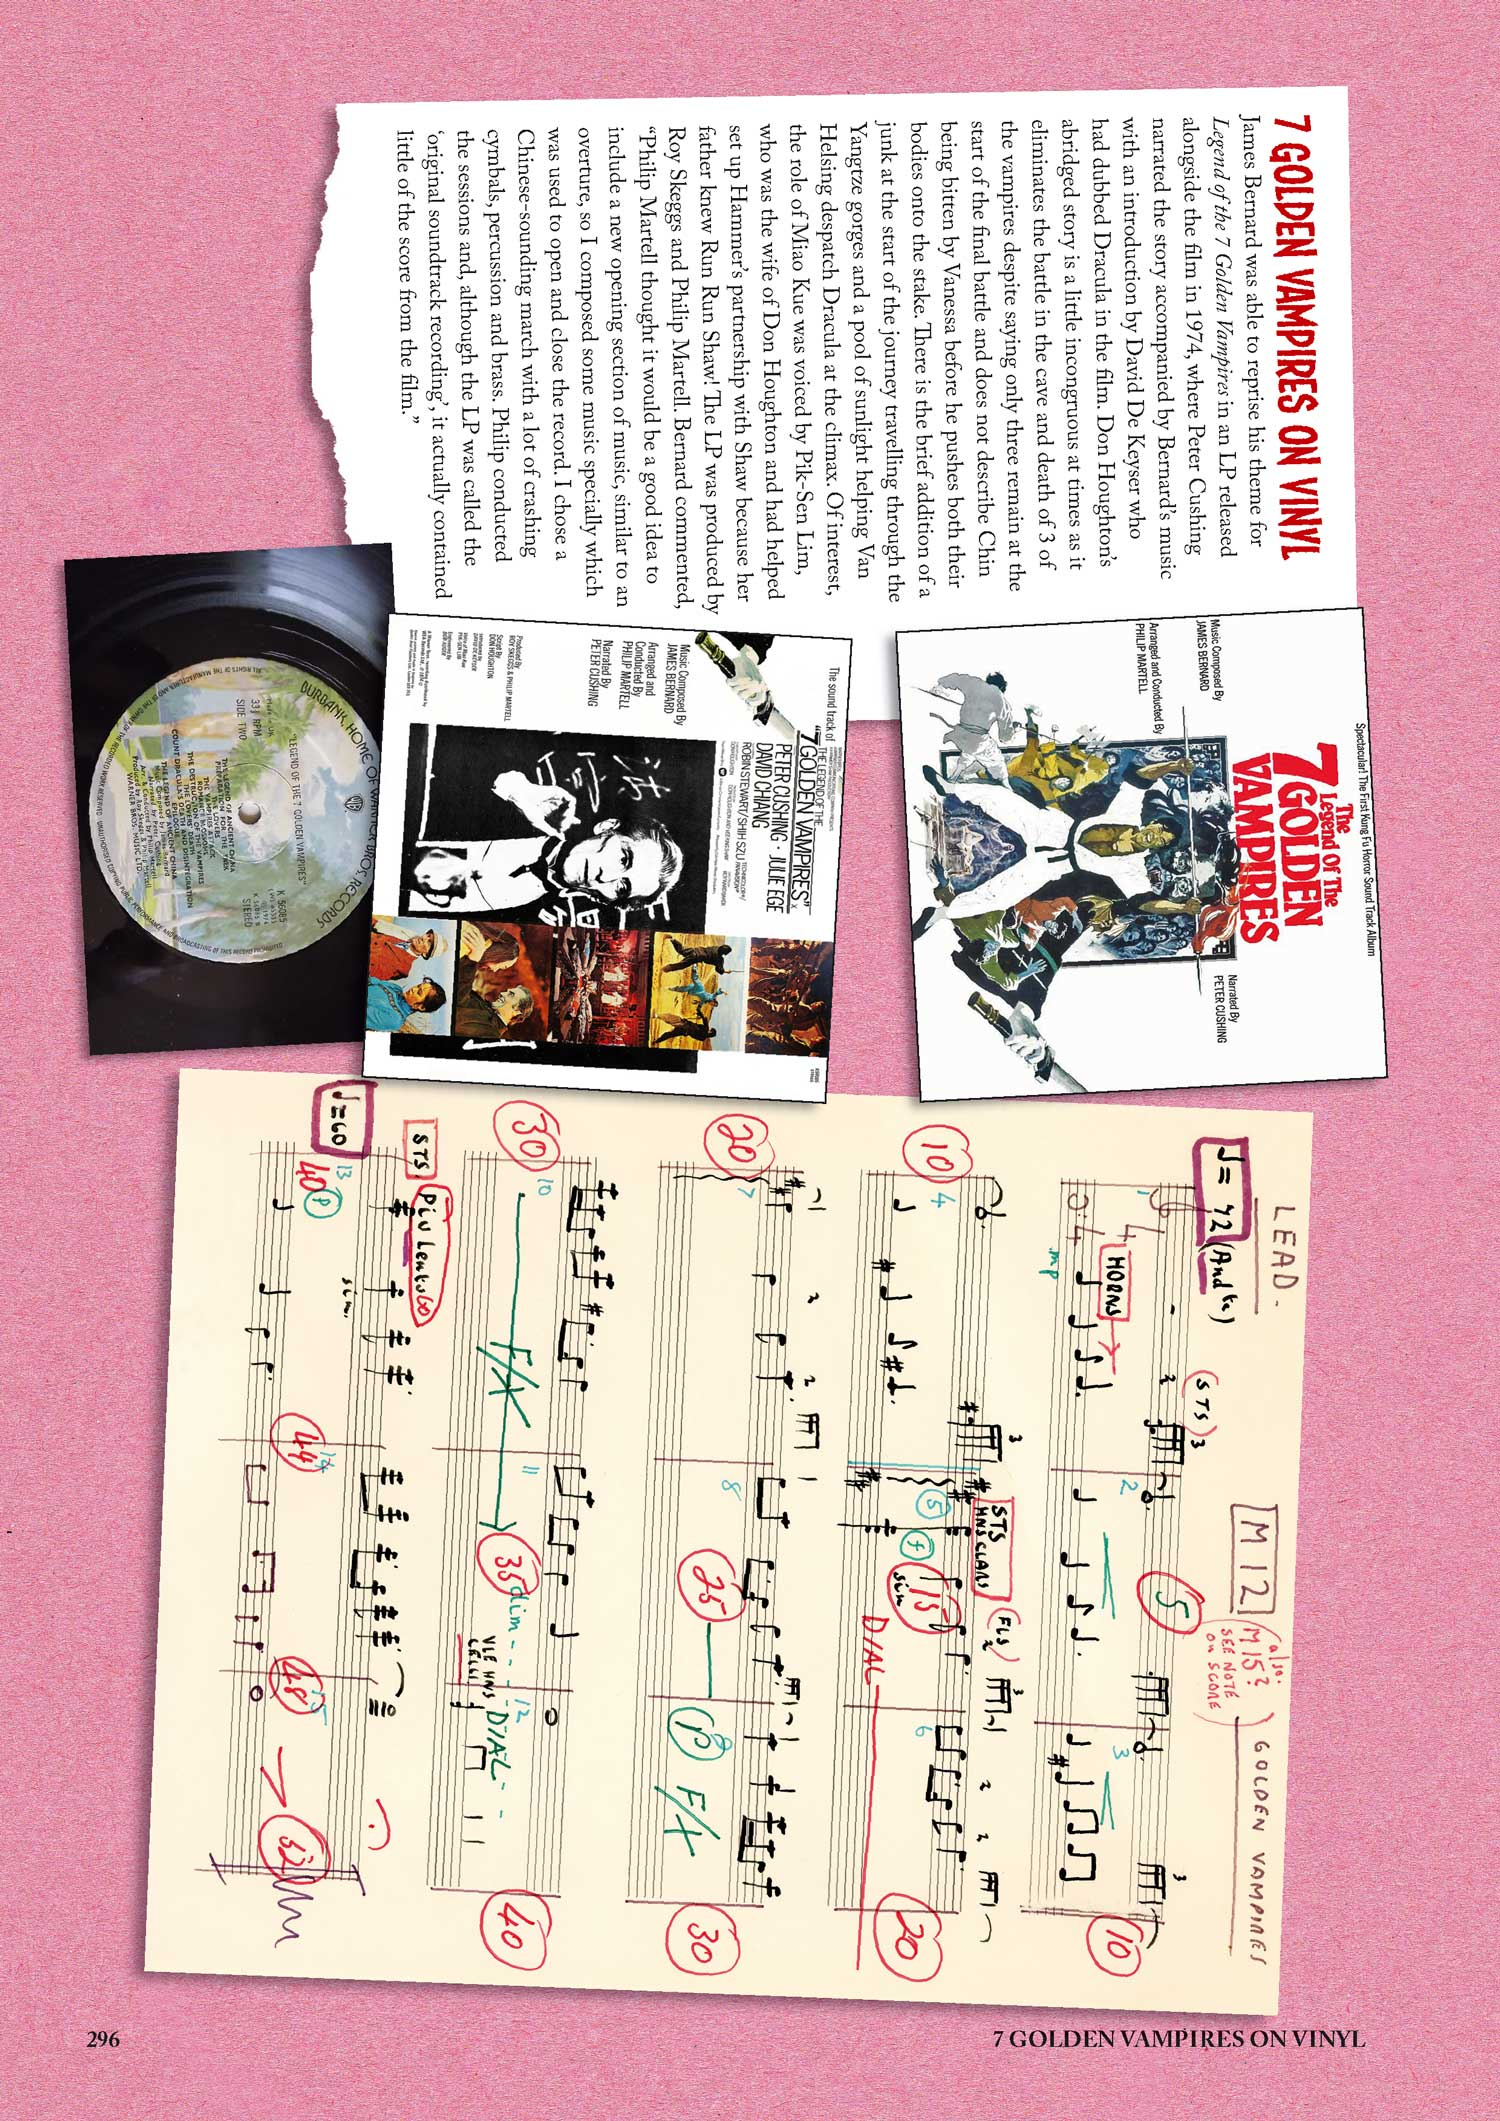 7 Giolden Vampires Inside page